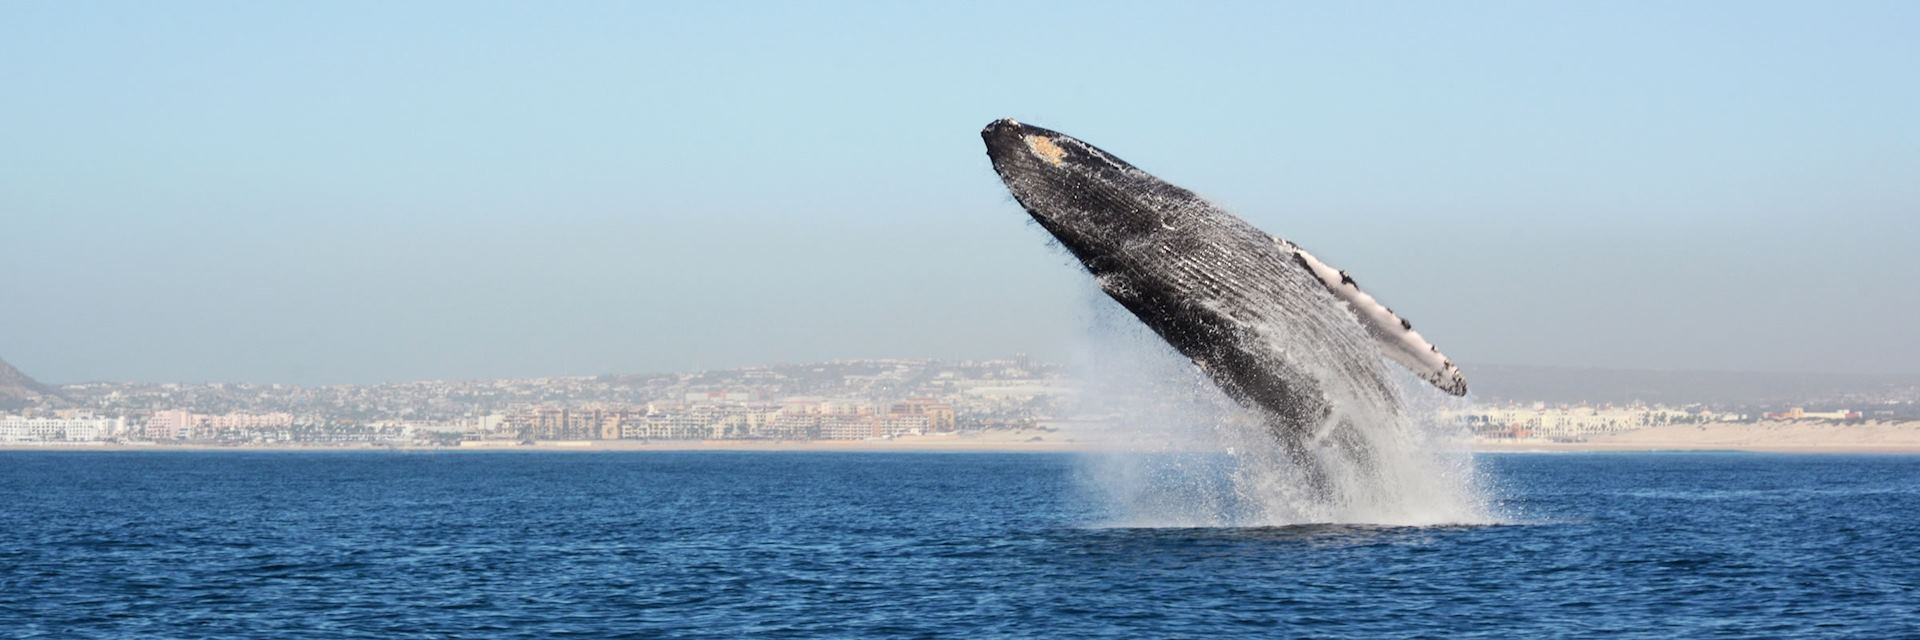 Whale breaching, Baja California, Mexico